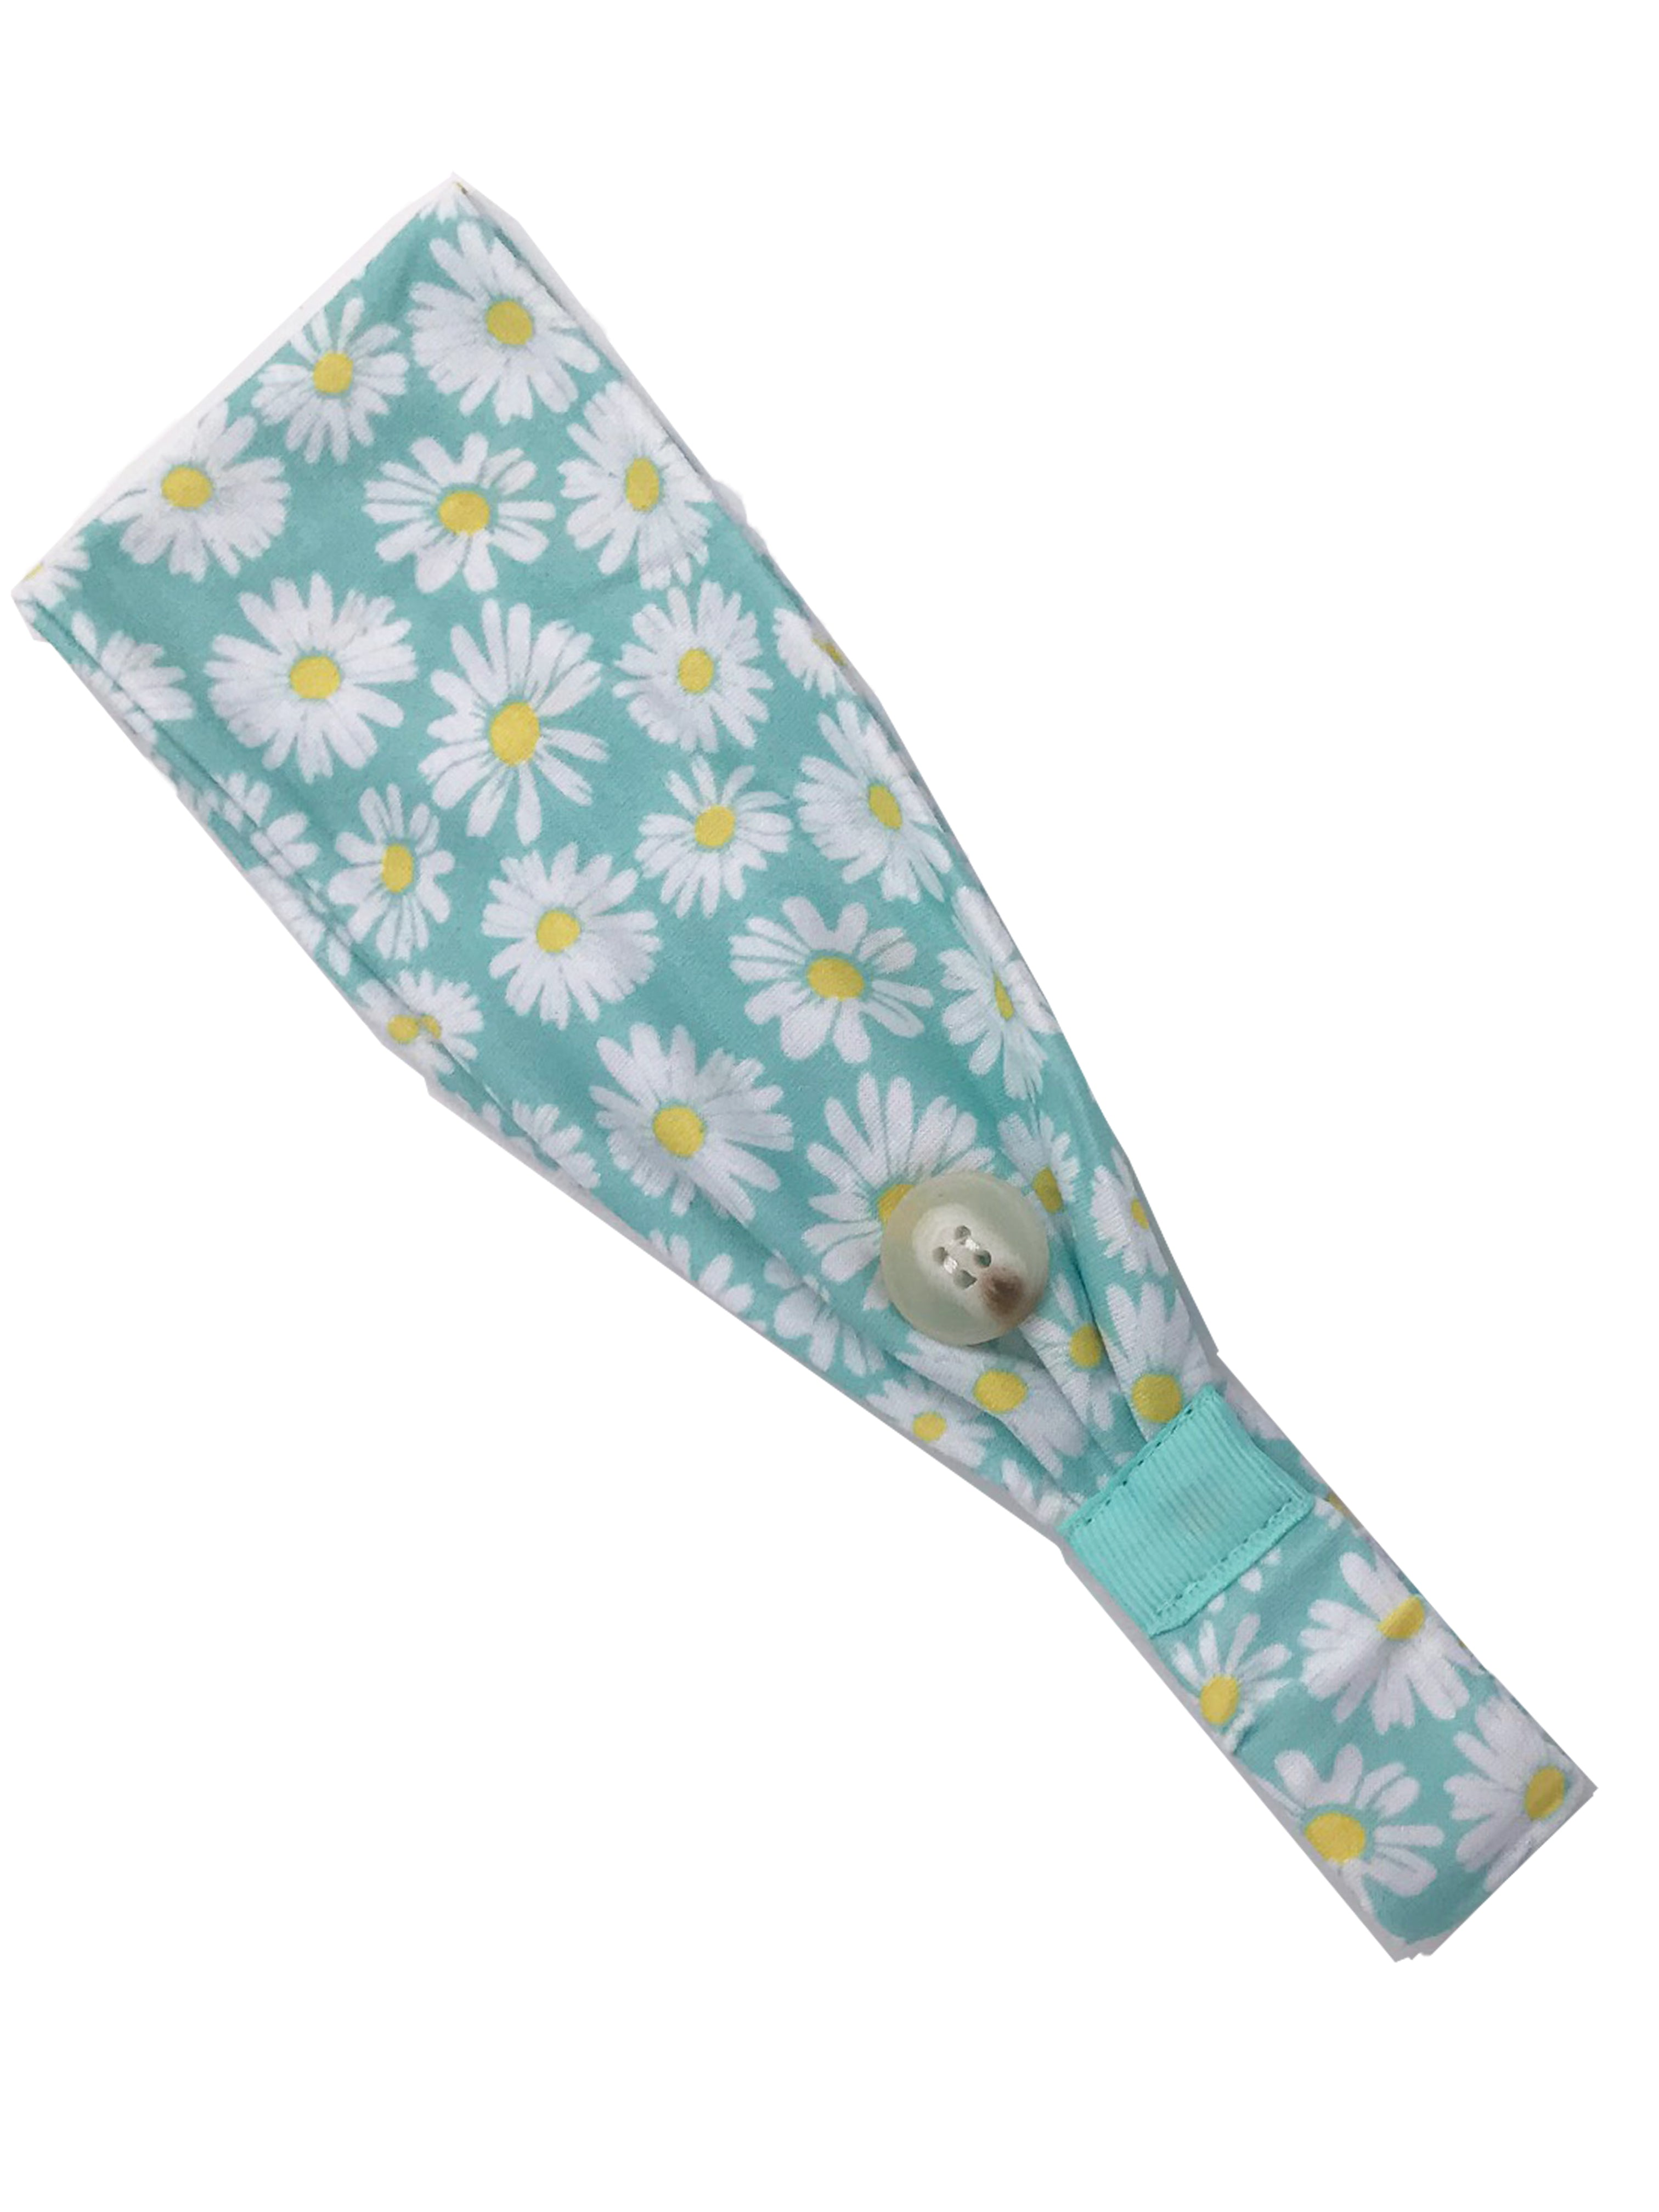 HB-2020 Adult Headband Daisy